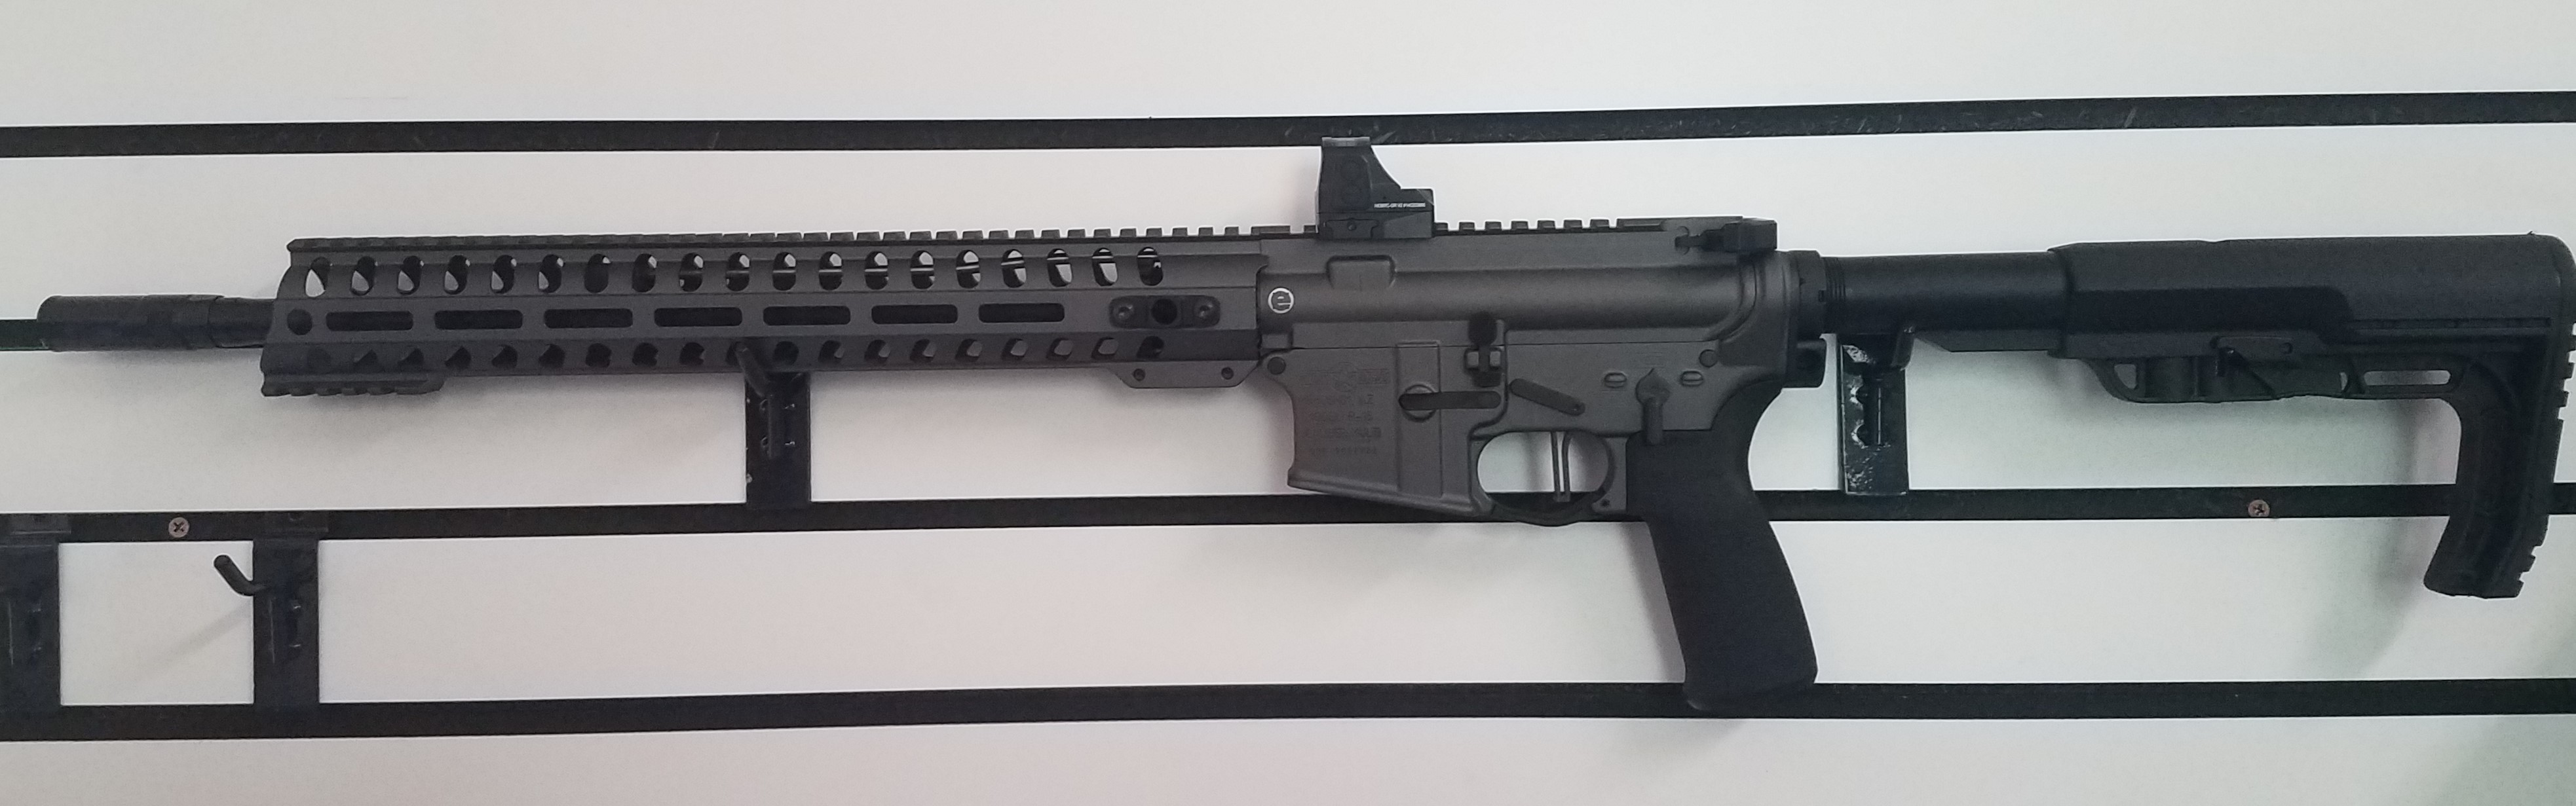 USED POF Minuteman 556 AR15 Tungsten Finish 30RD/W Holosun Sight